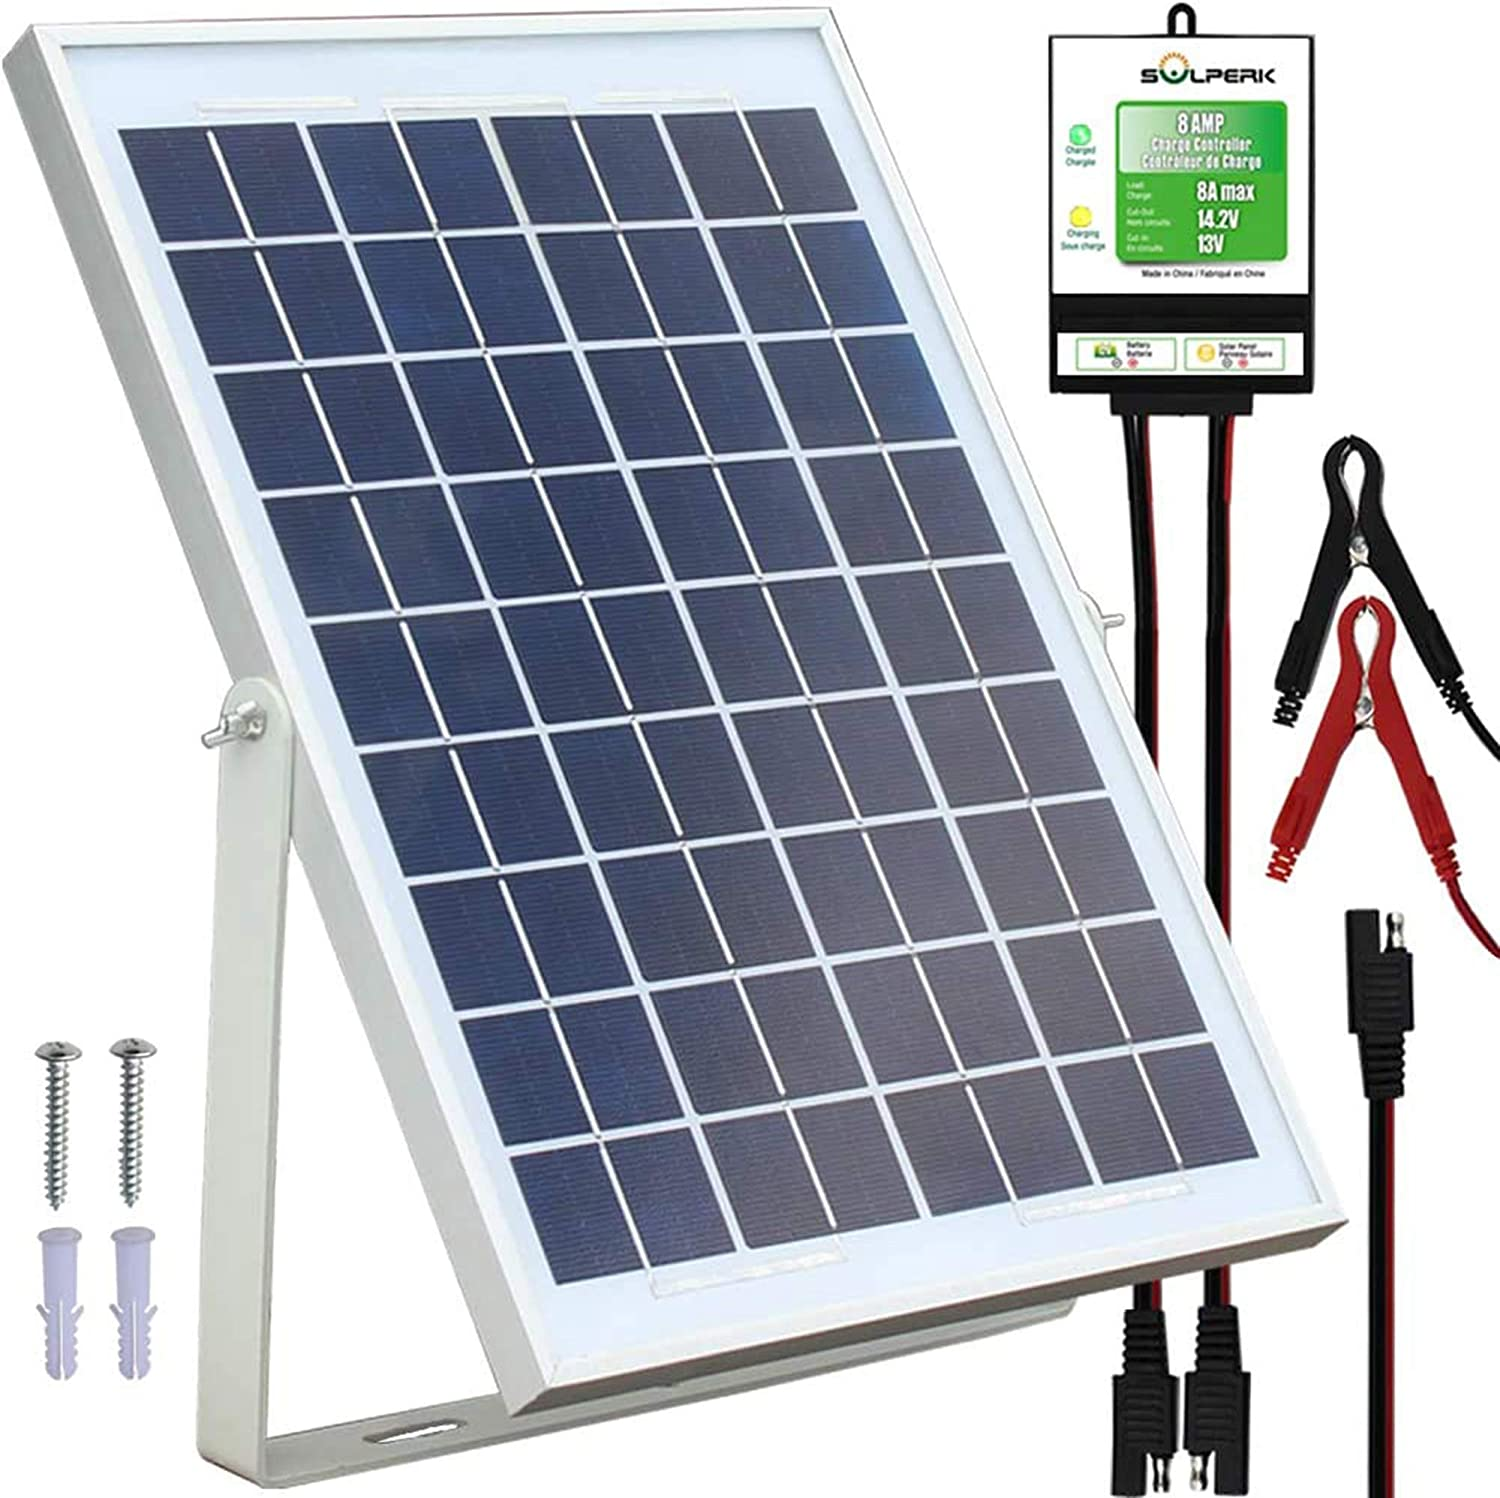 Solperk 10w Solar Panel Solar Trickle Charger Solar Battery Charger And Maintainer Suitable For Automotive Motorcycle Boat Atv Marine Rv Trailer Powersports Snowmobile Etc 10w Solar Panels Amazon Ca Patio Lawn Garden